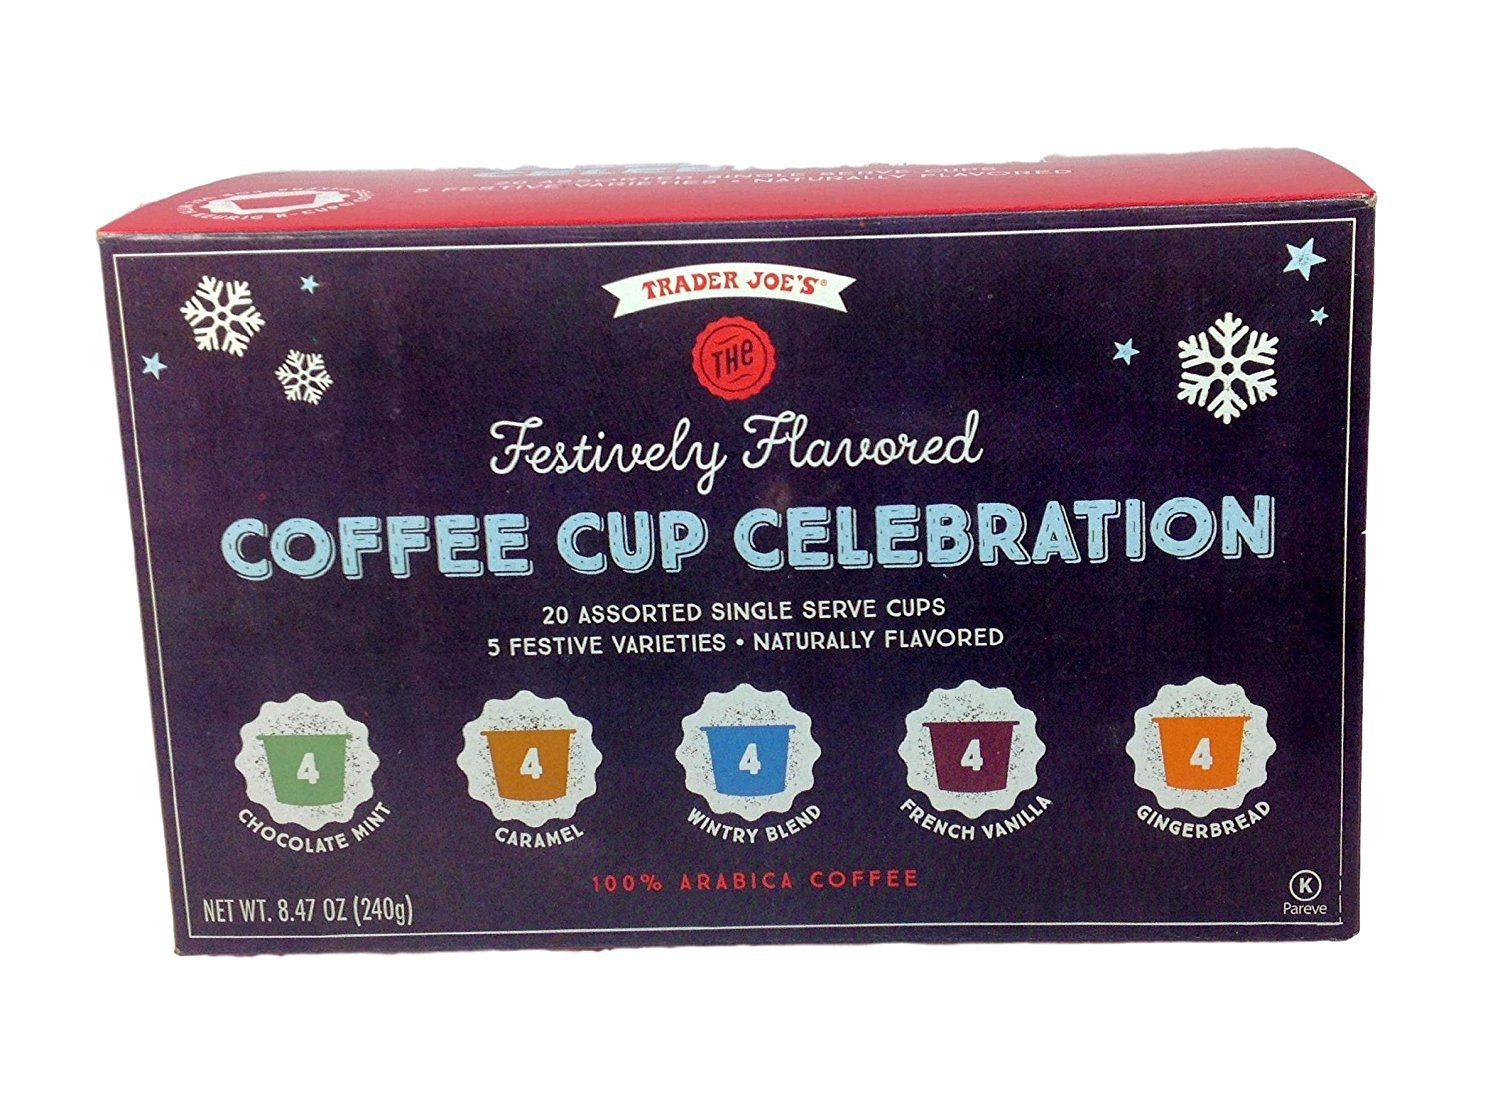 trader-joes-gifts-festively-flavored-coffee-cup-celebration